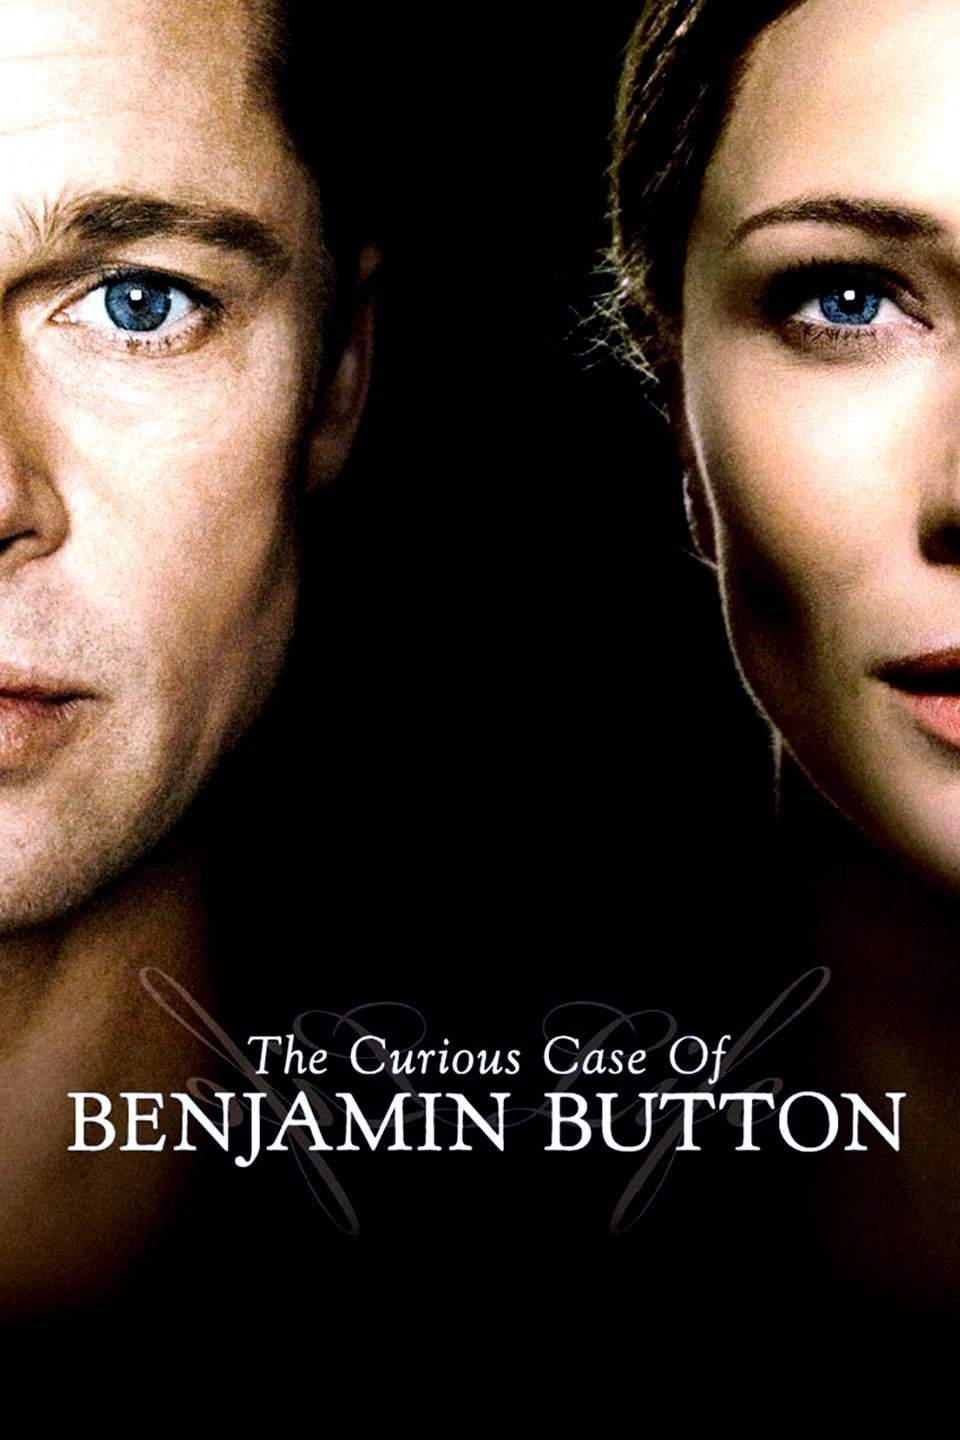 The Curious Case Of Benjamin Button 2008 Review Favorite Directors Series Movies Tv Amino